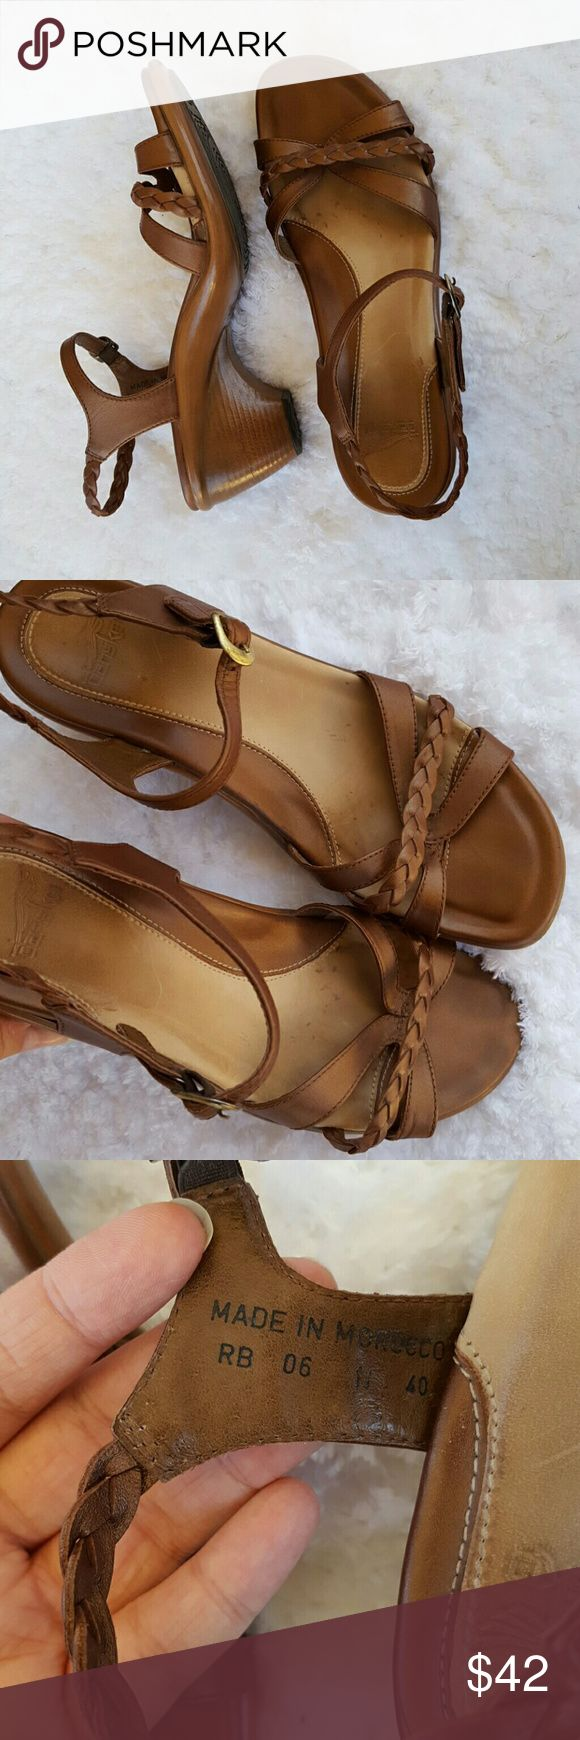 Dansko Brown Heeled Sandals Size 10 EUC So cute and comfy! Great used condition, see photos for minor flaws. Nothing too noticeable, some insole wear, leather crinkling, some scuffing of the metal buckles, and scuffing on the toes. Grab these up for Spring, it'll be here before you know it! Dansko Shoes Sandals